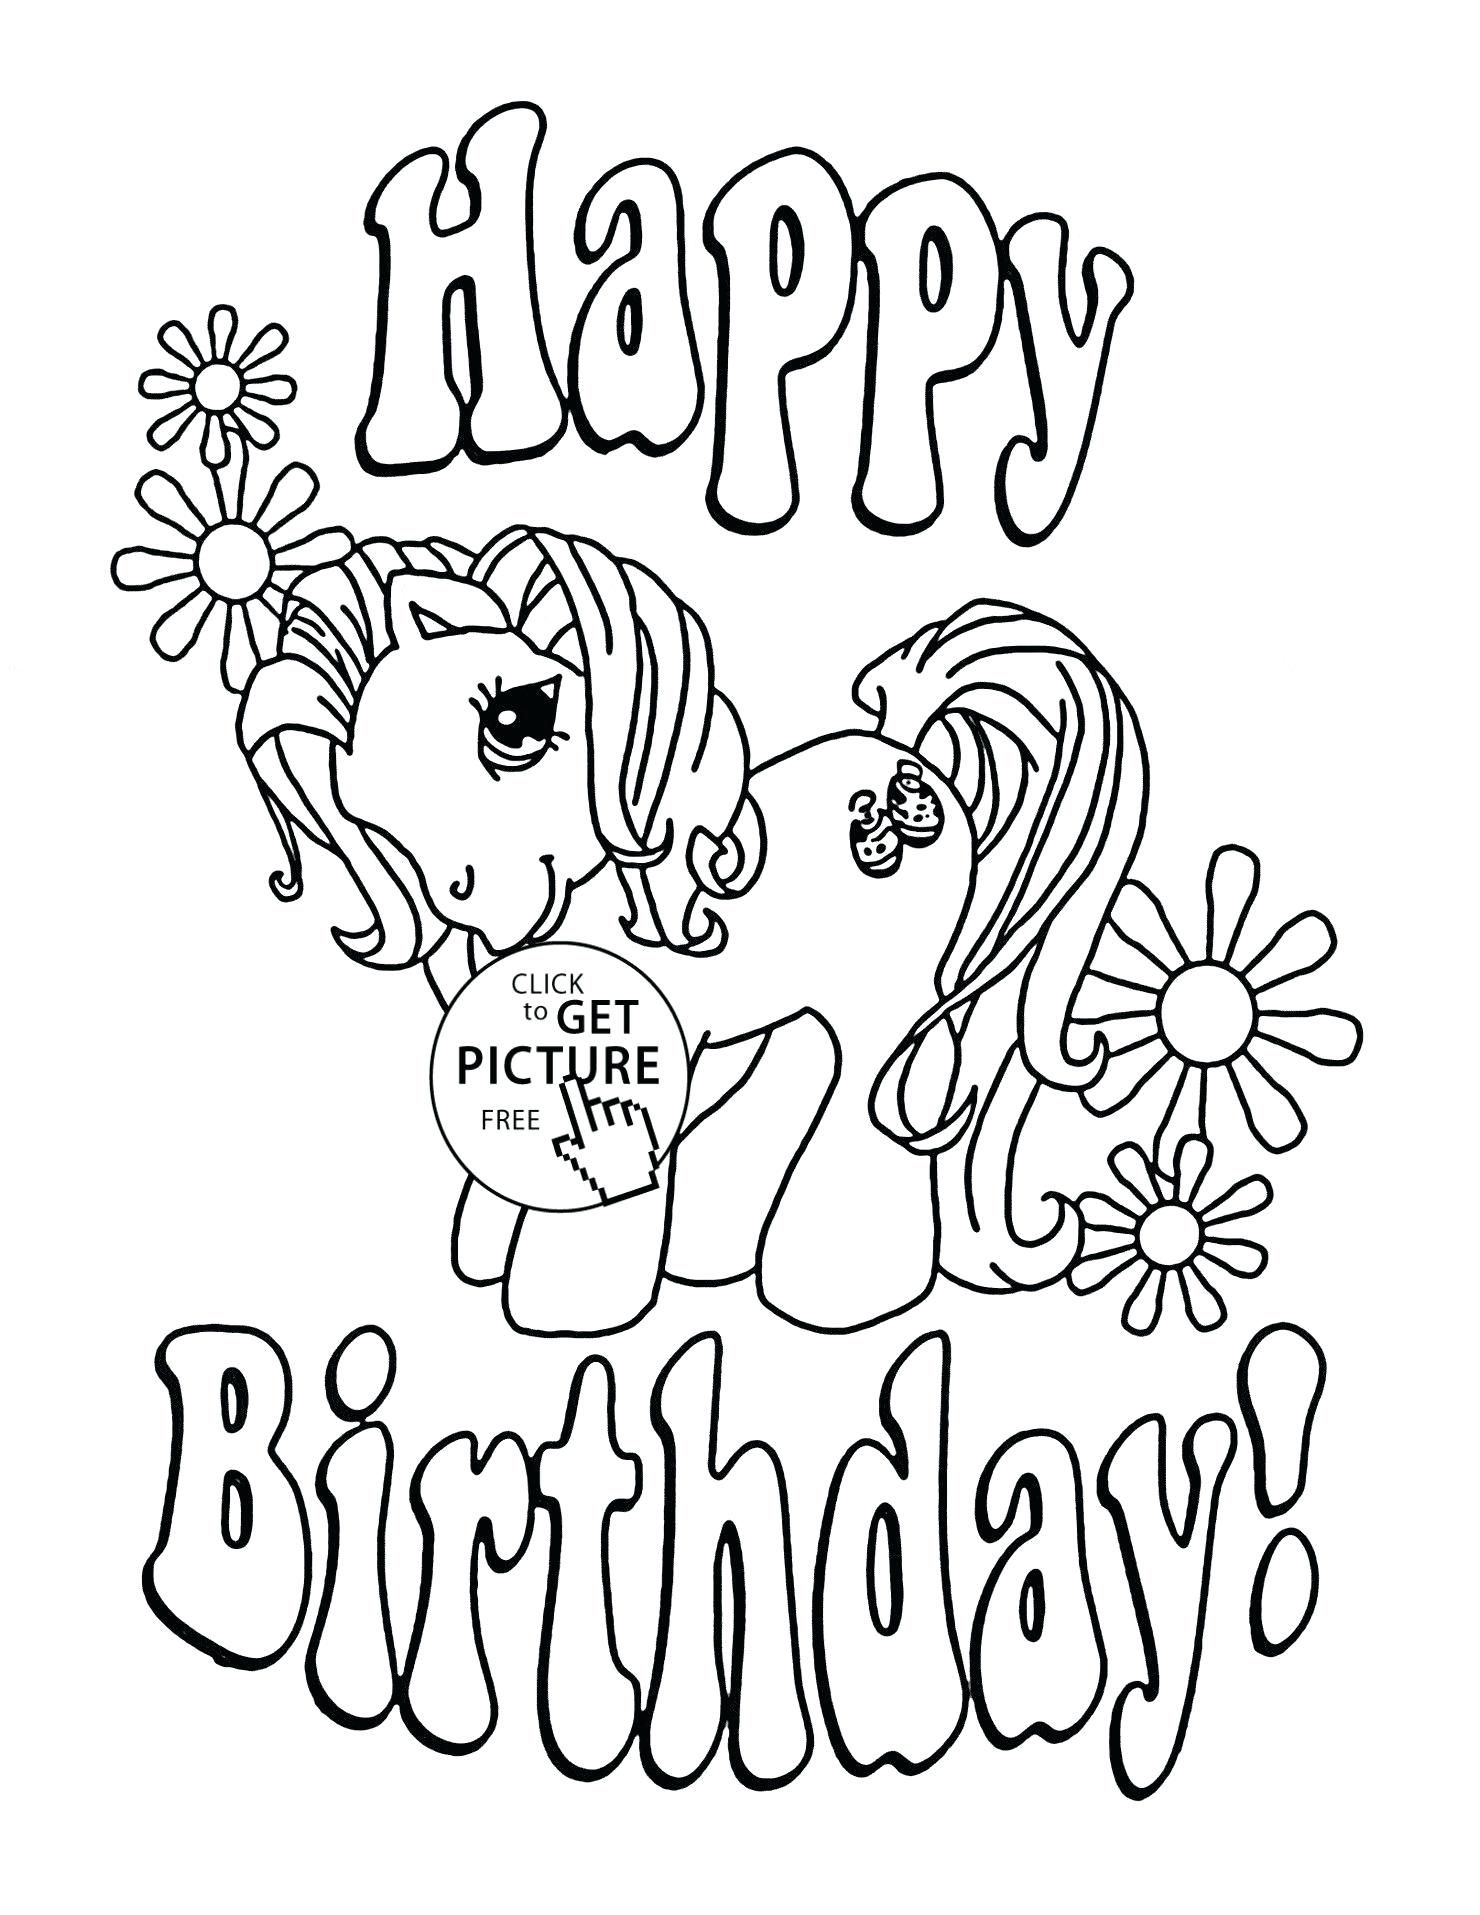 The Marvellous Coloring Pages Top Wonderful Happy Birthday Mom Coloring For Mom Coloring Birthday Cards Happy Birthday Coloring Pages Unicorn Coloring Pages